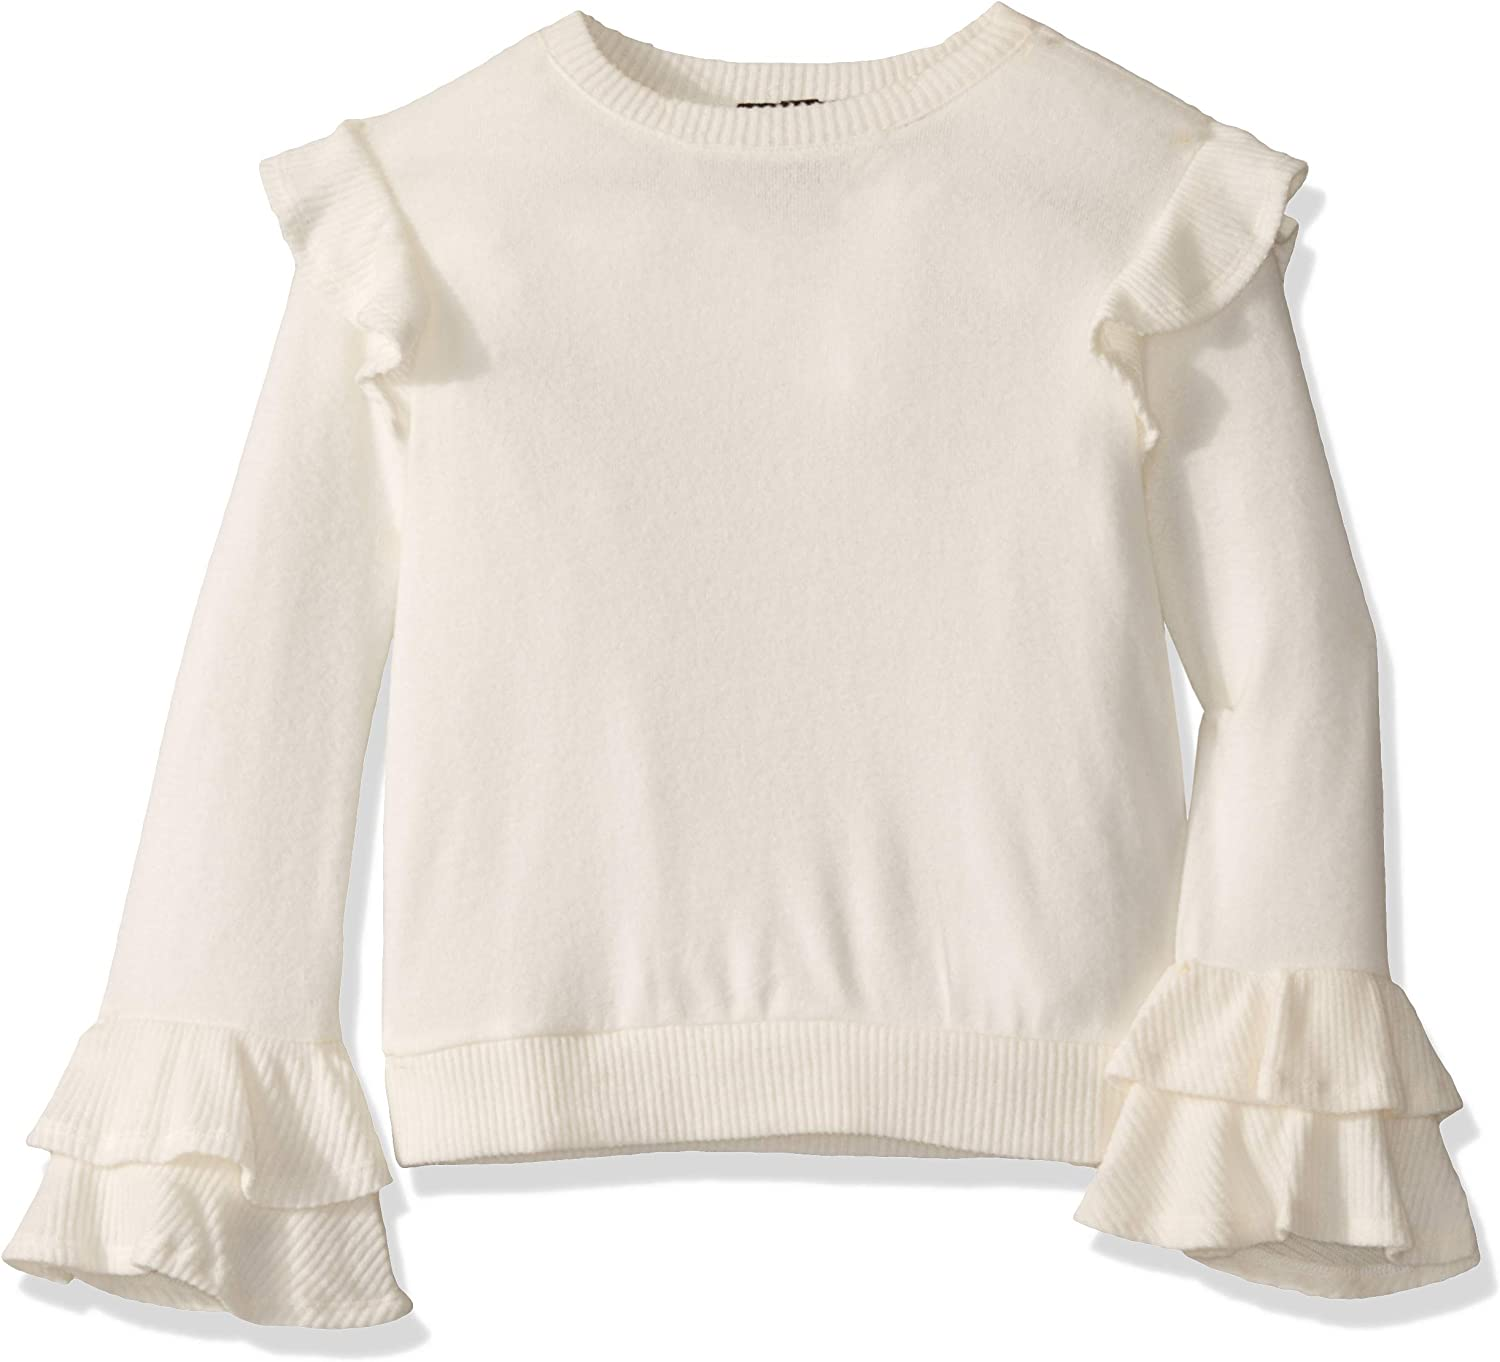 Amy Byer Girls Big Long Top with Ruffle at Sleeve